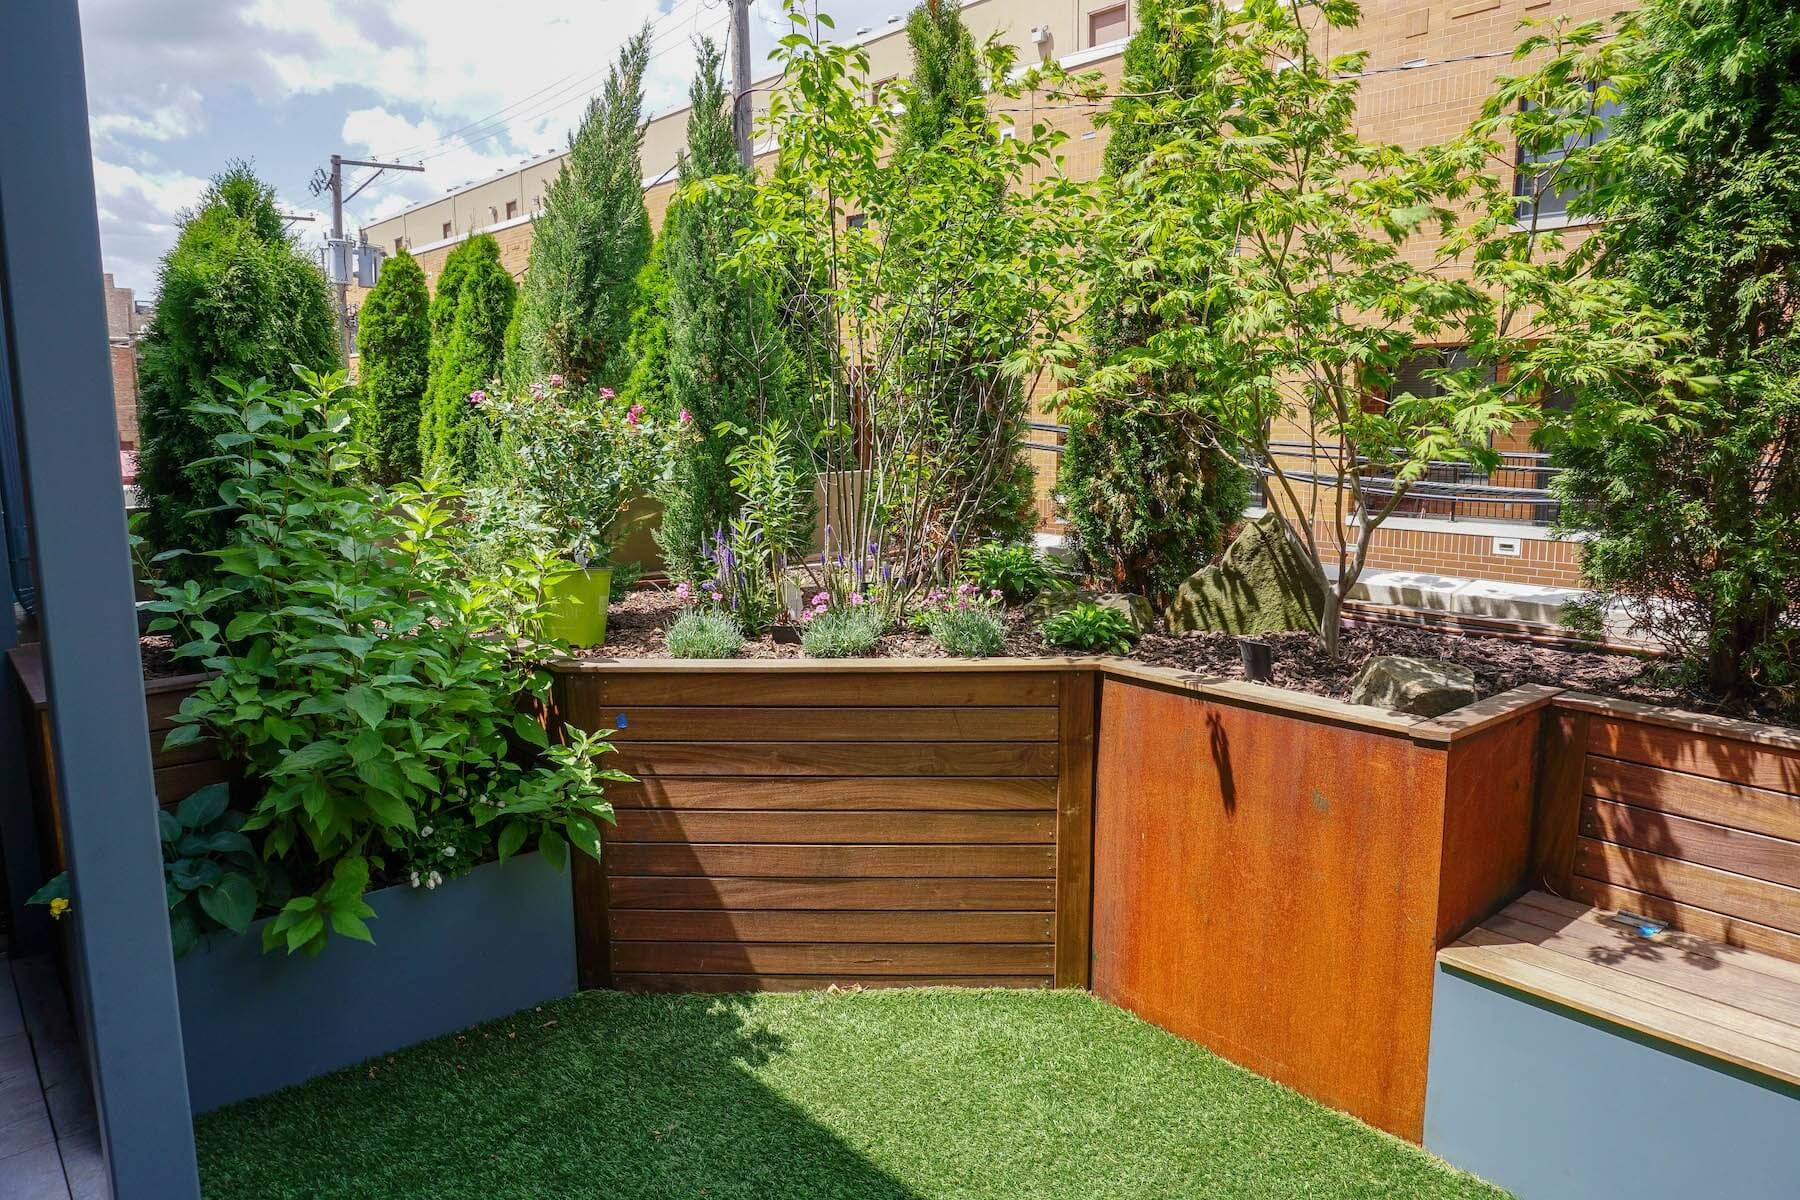 Built-In Planters and Turf